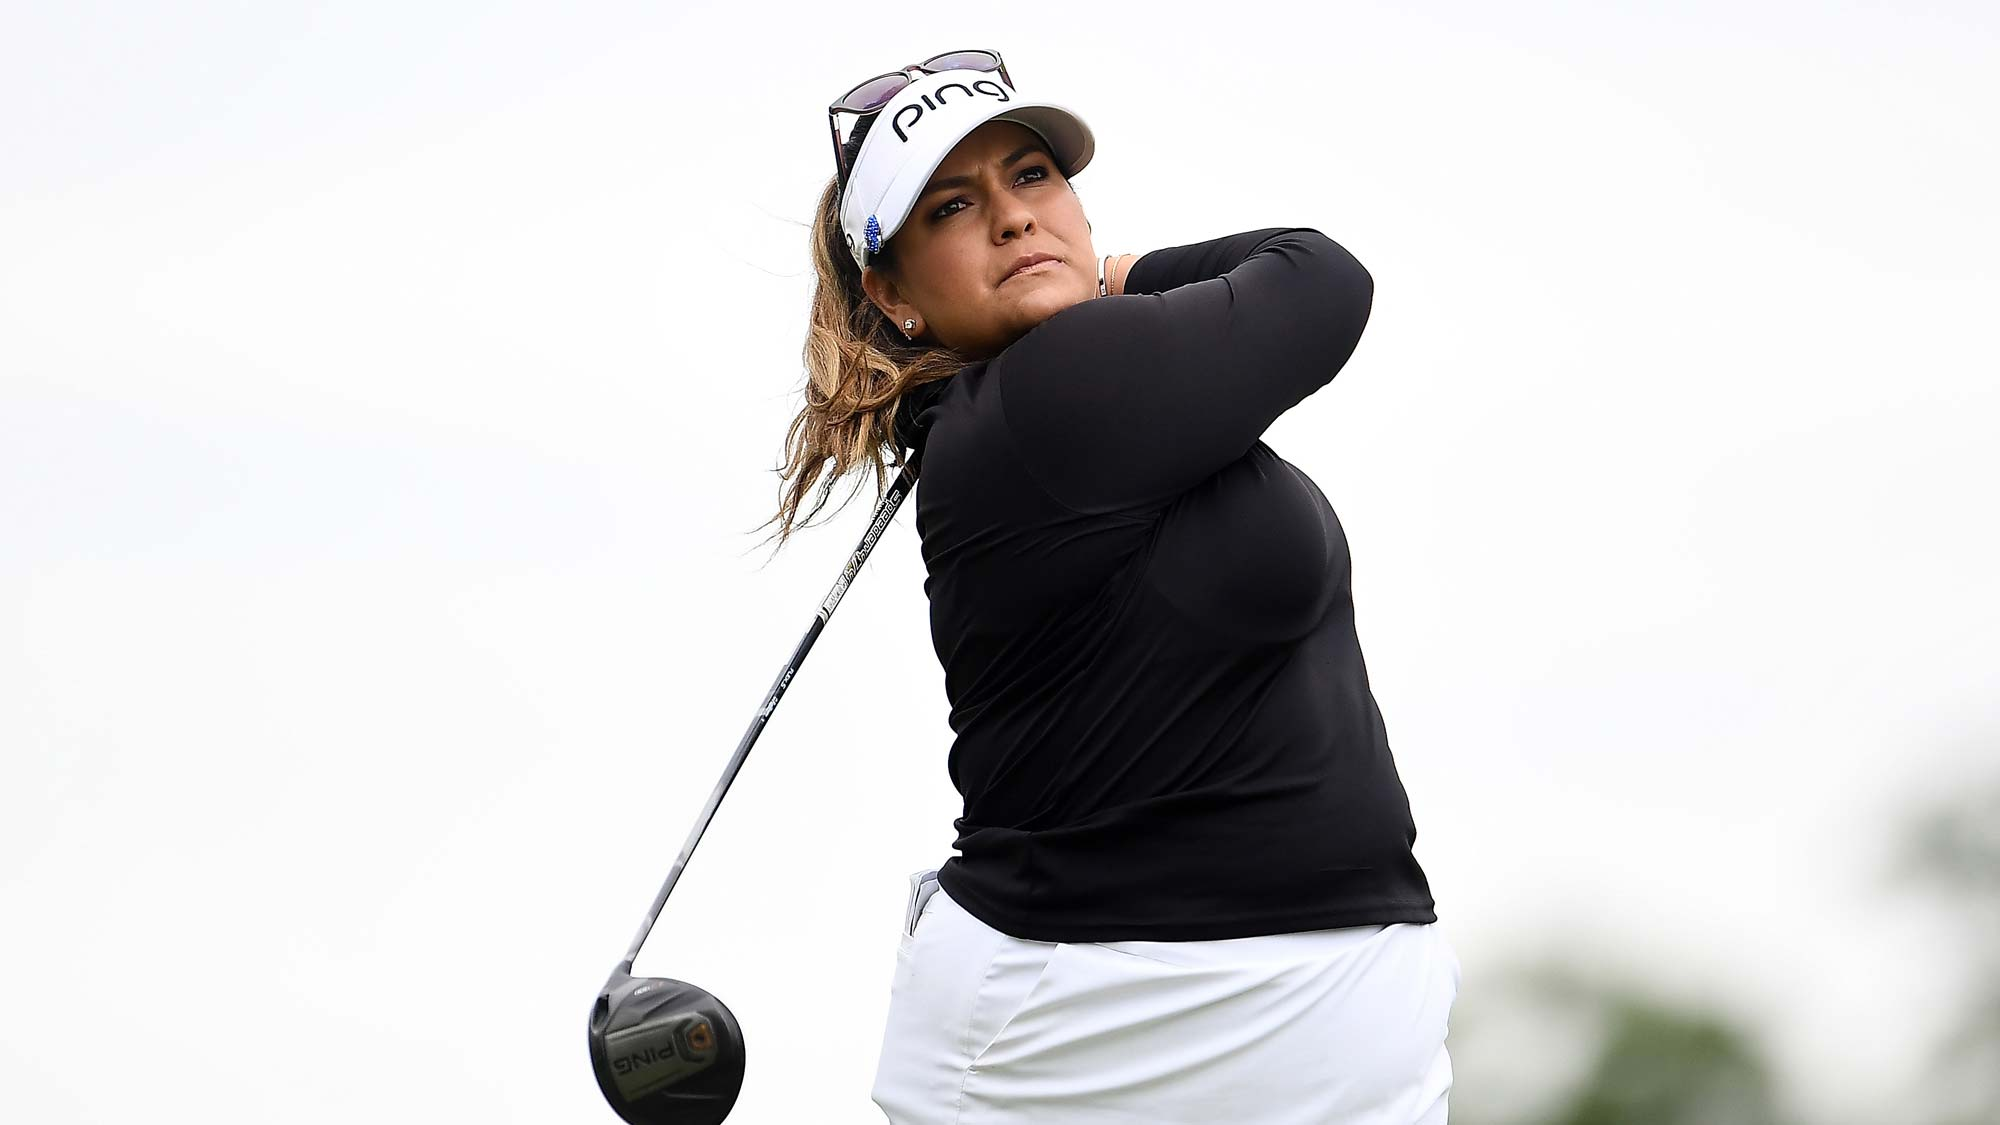 Lizette Salas hits her tee shot on the third hole during the third round of the KPMG PGA Championship